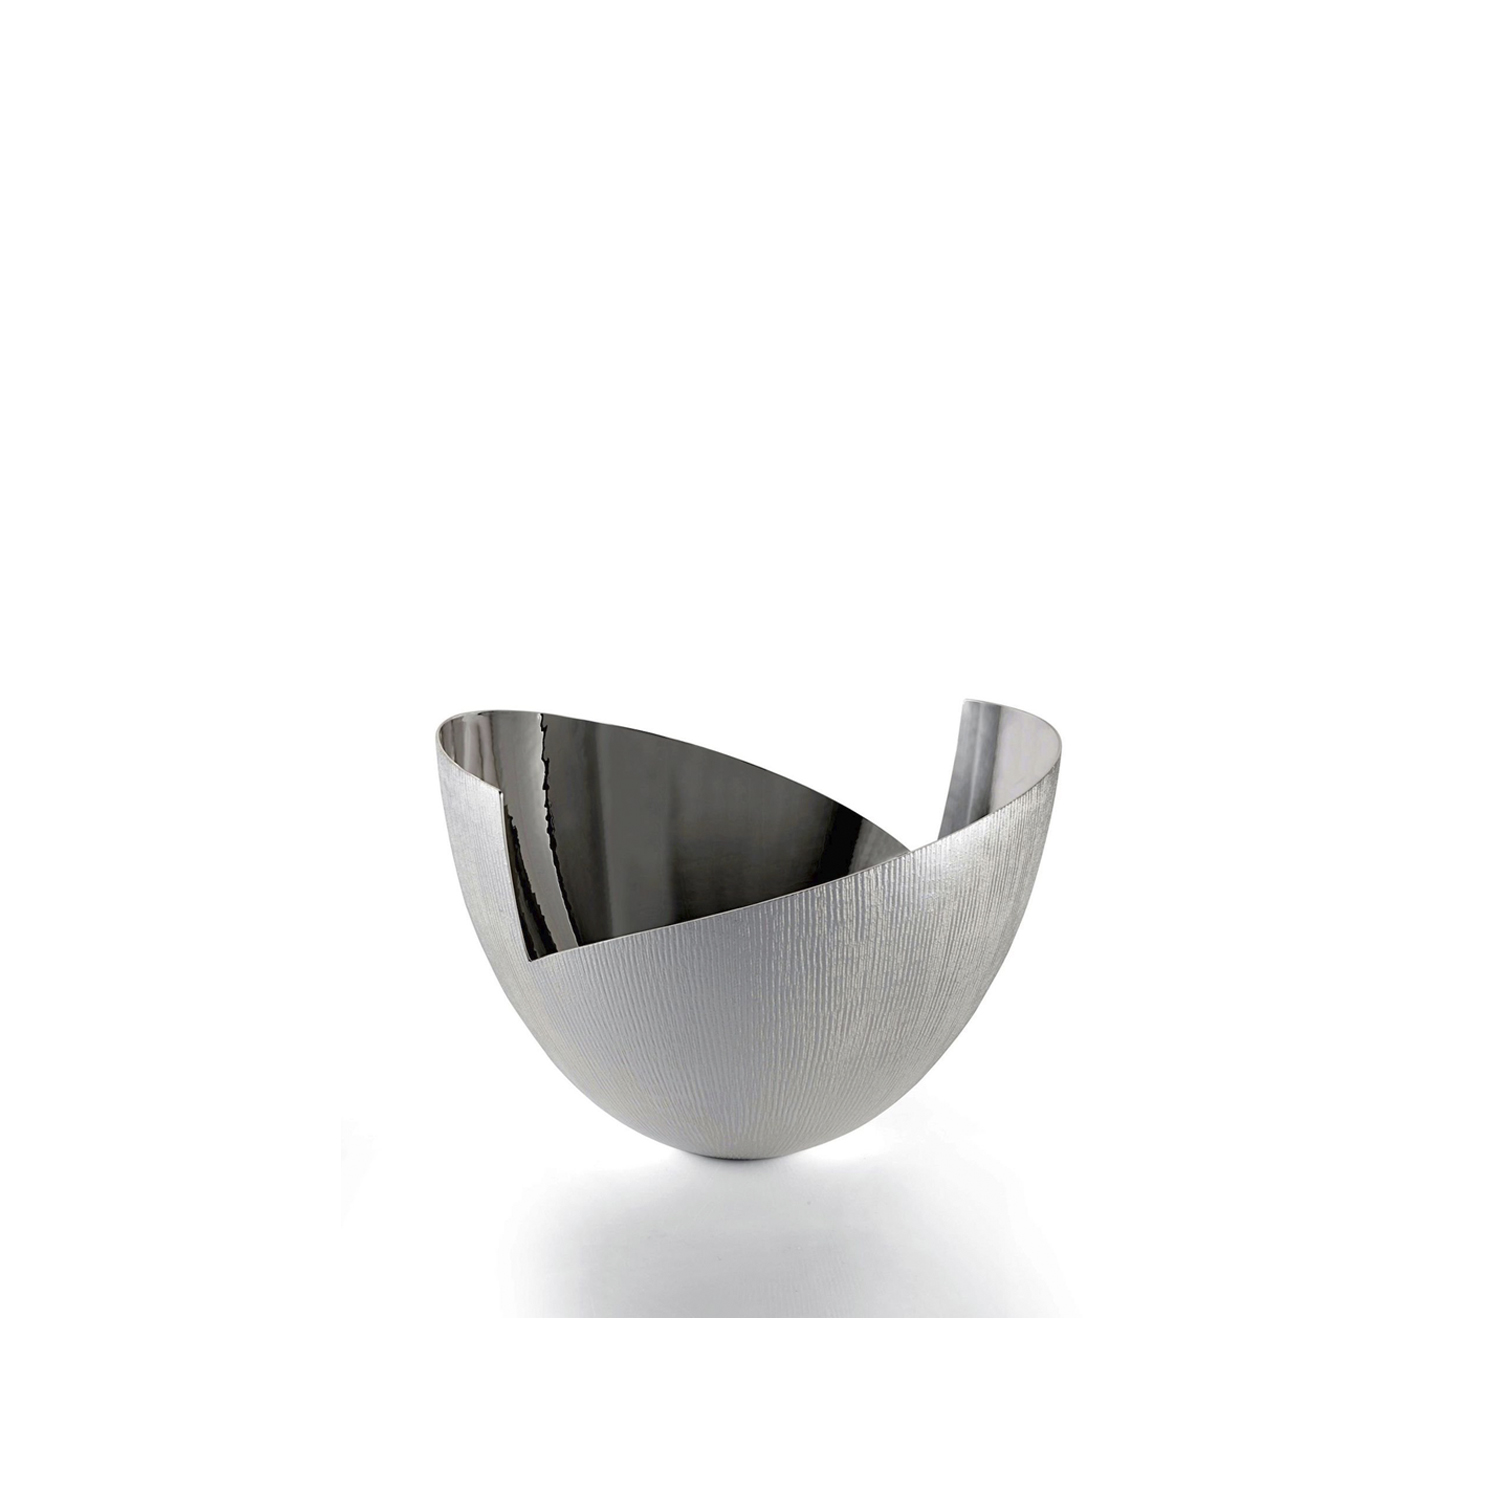 Vela Bowl - Graceful and original in its asymmetrical forms, the Vela Bowl has a completely hand-hammered outer surface to achieve the characteristic embossed texture. By contrast, the interior has a shiny finish. Goes perfectly with the Vela Vase to create a high impact. | Matter of Stuff